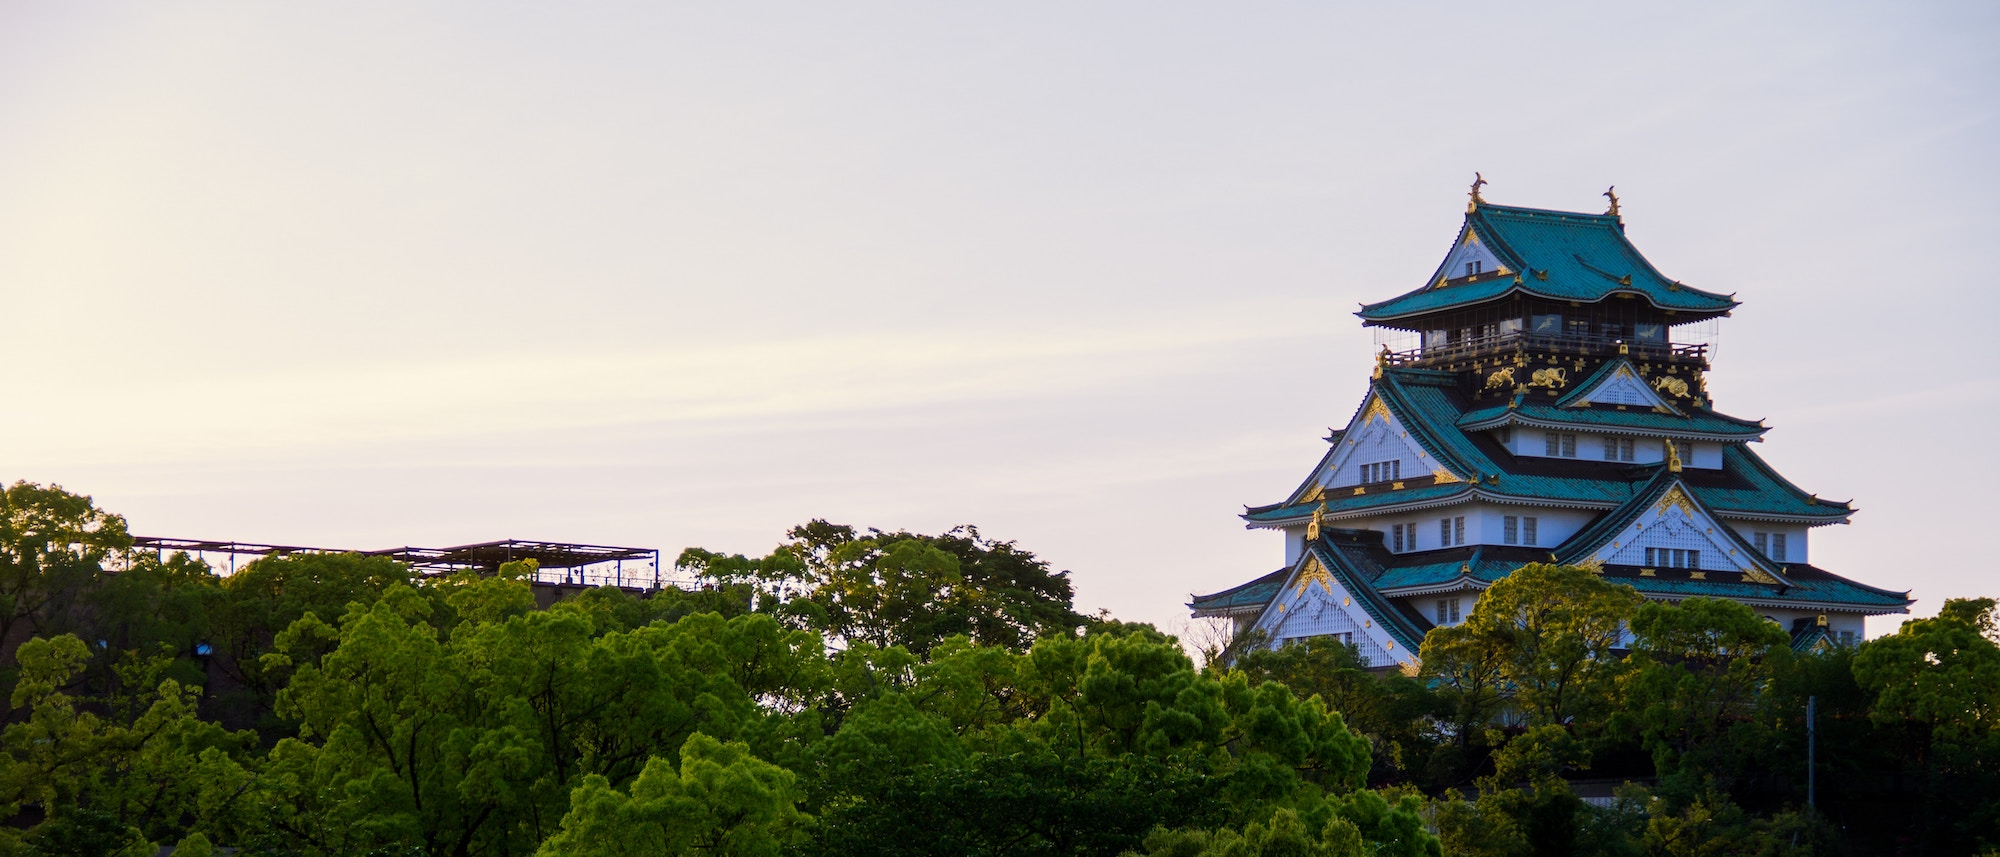 10 Castles You Should Visit in Japan